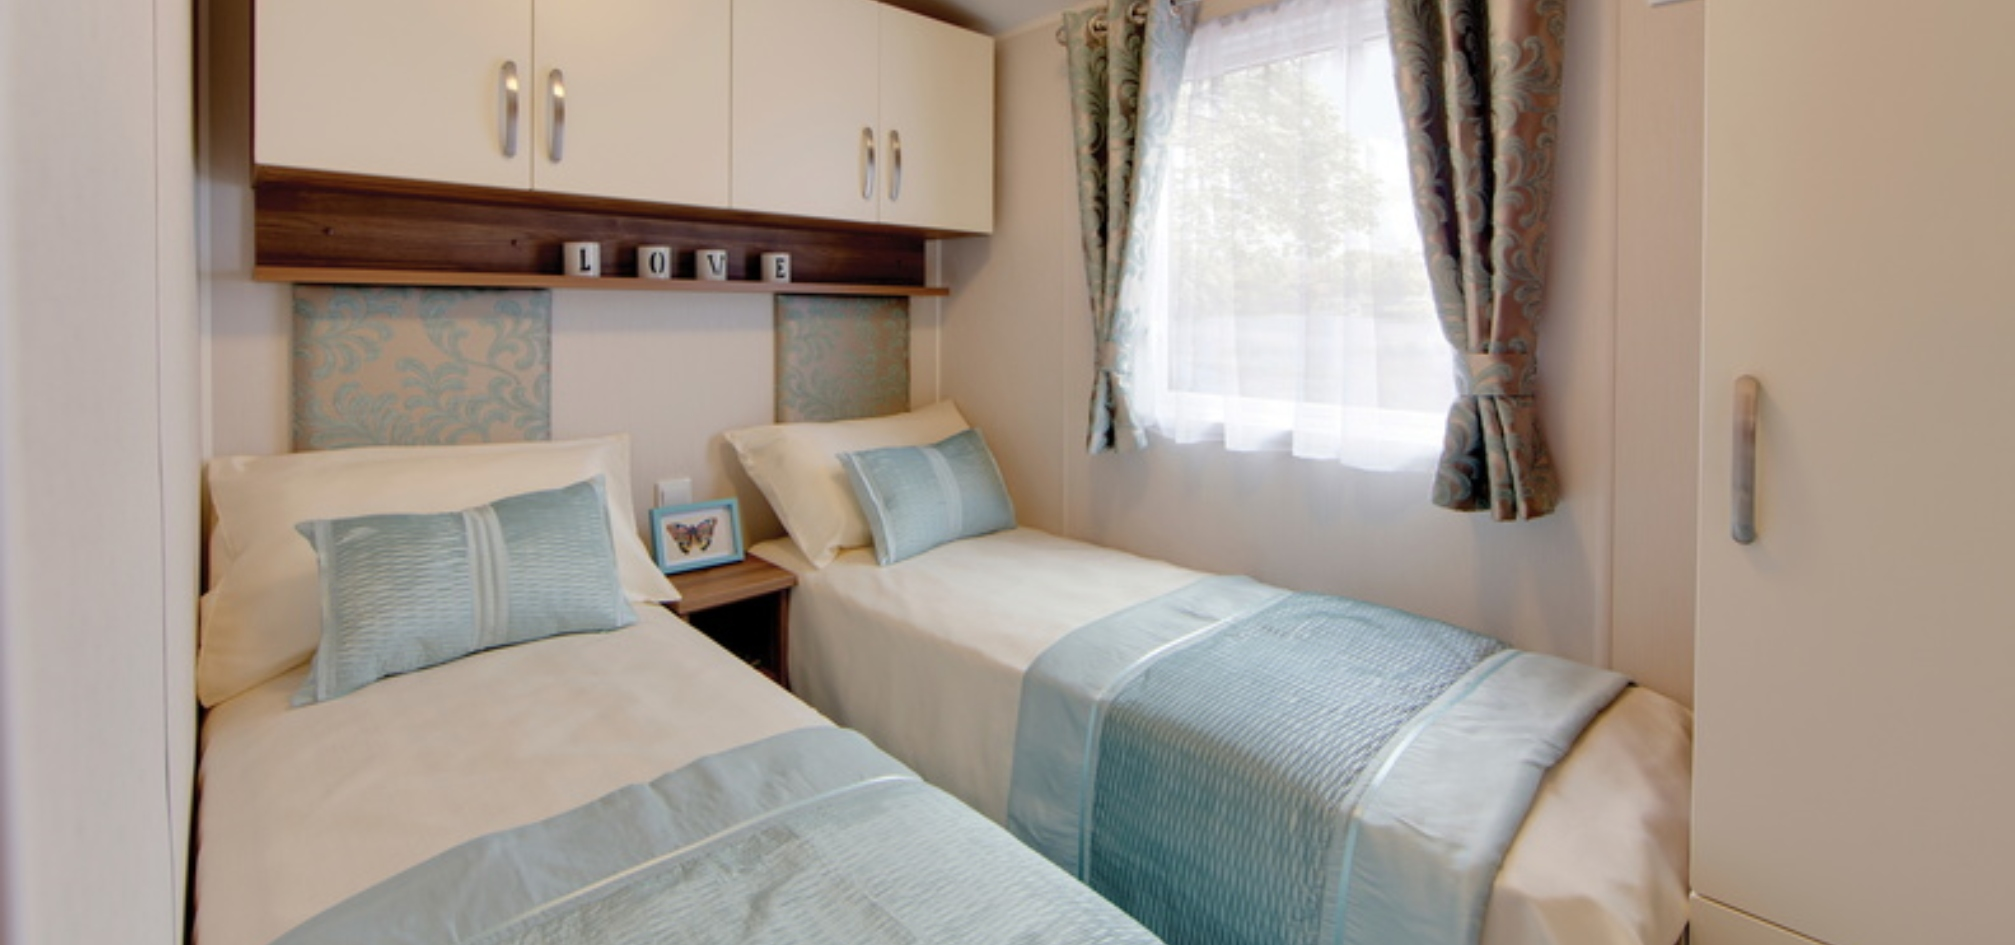 twin room with identical single beds perpendicular to a window with cupboards above the beds